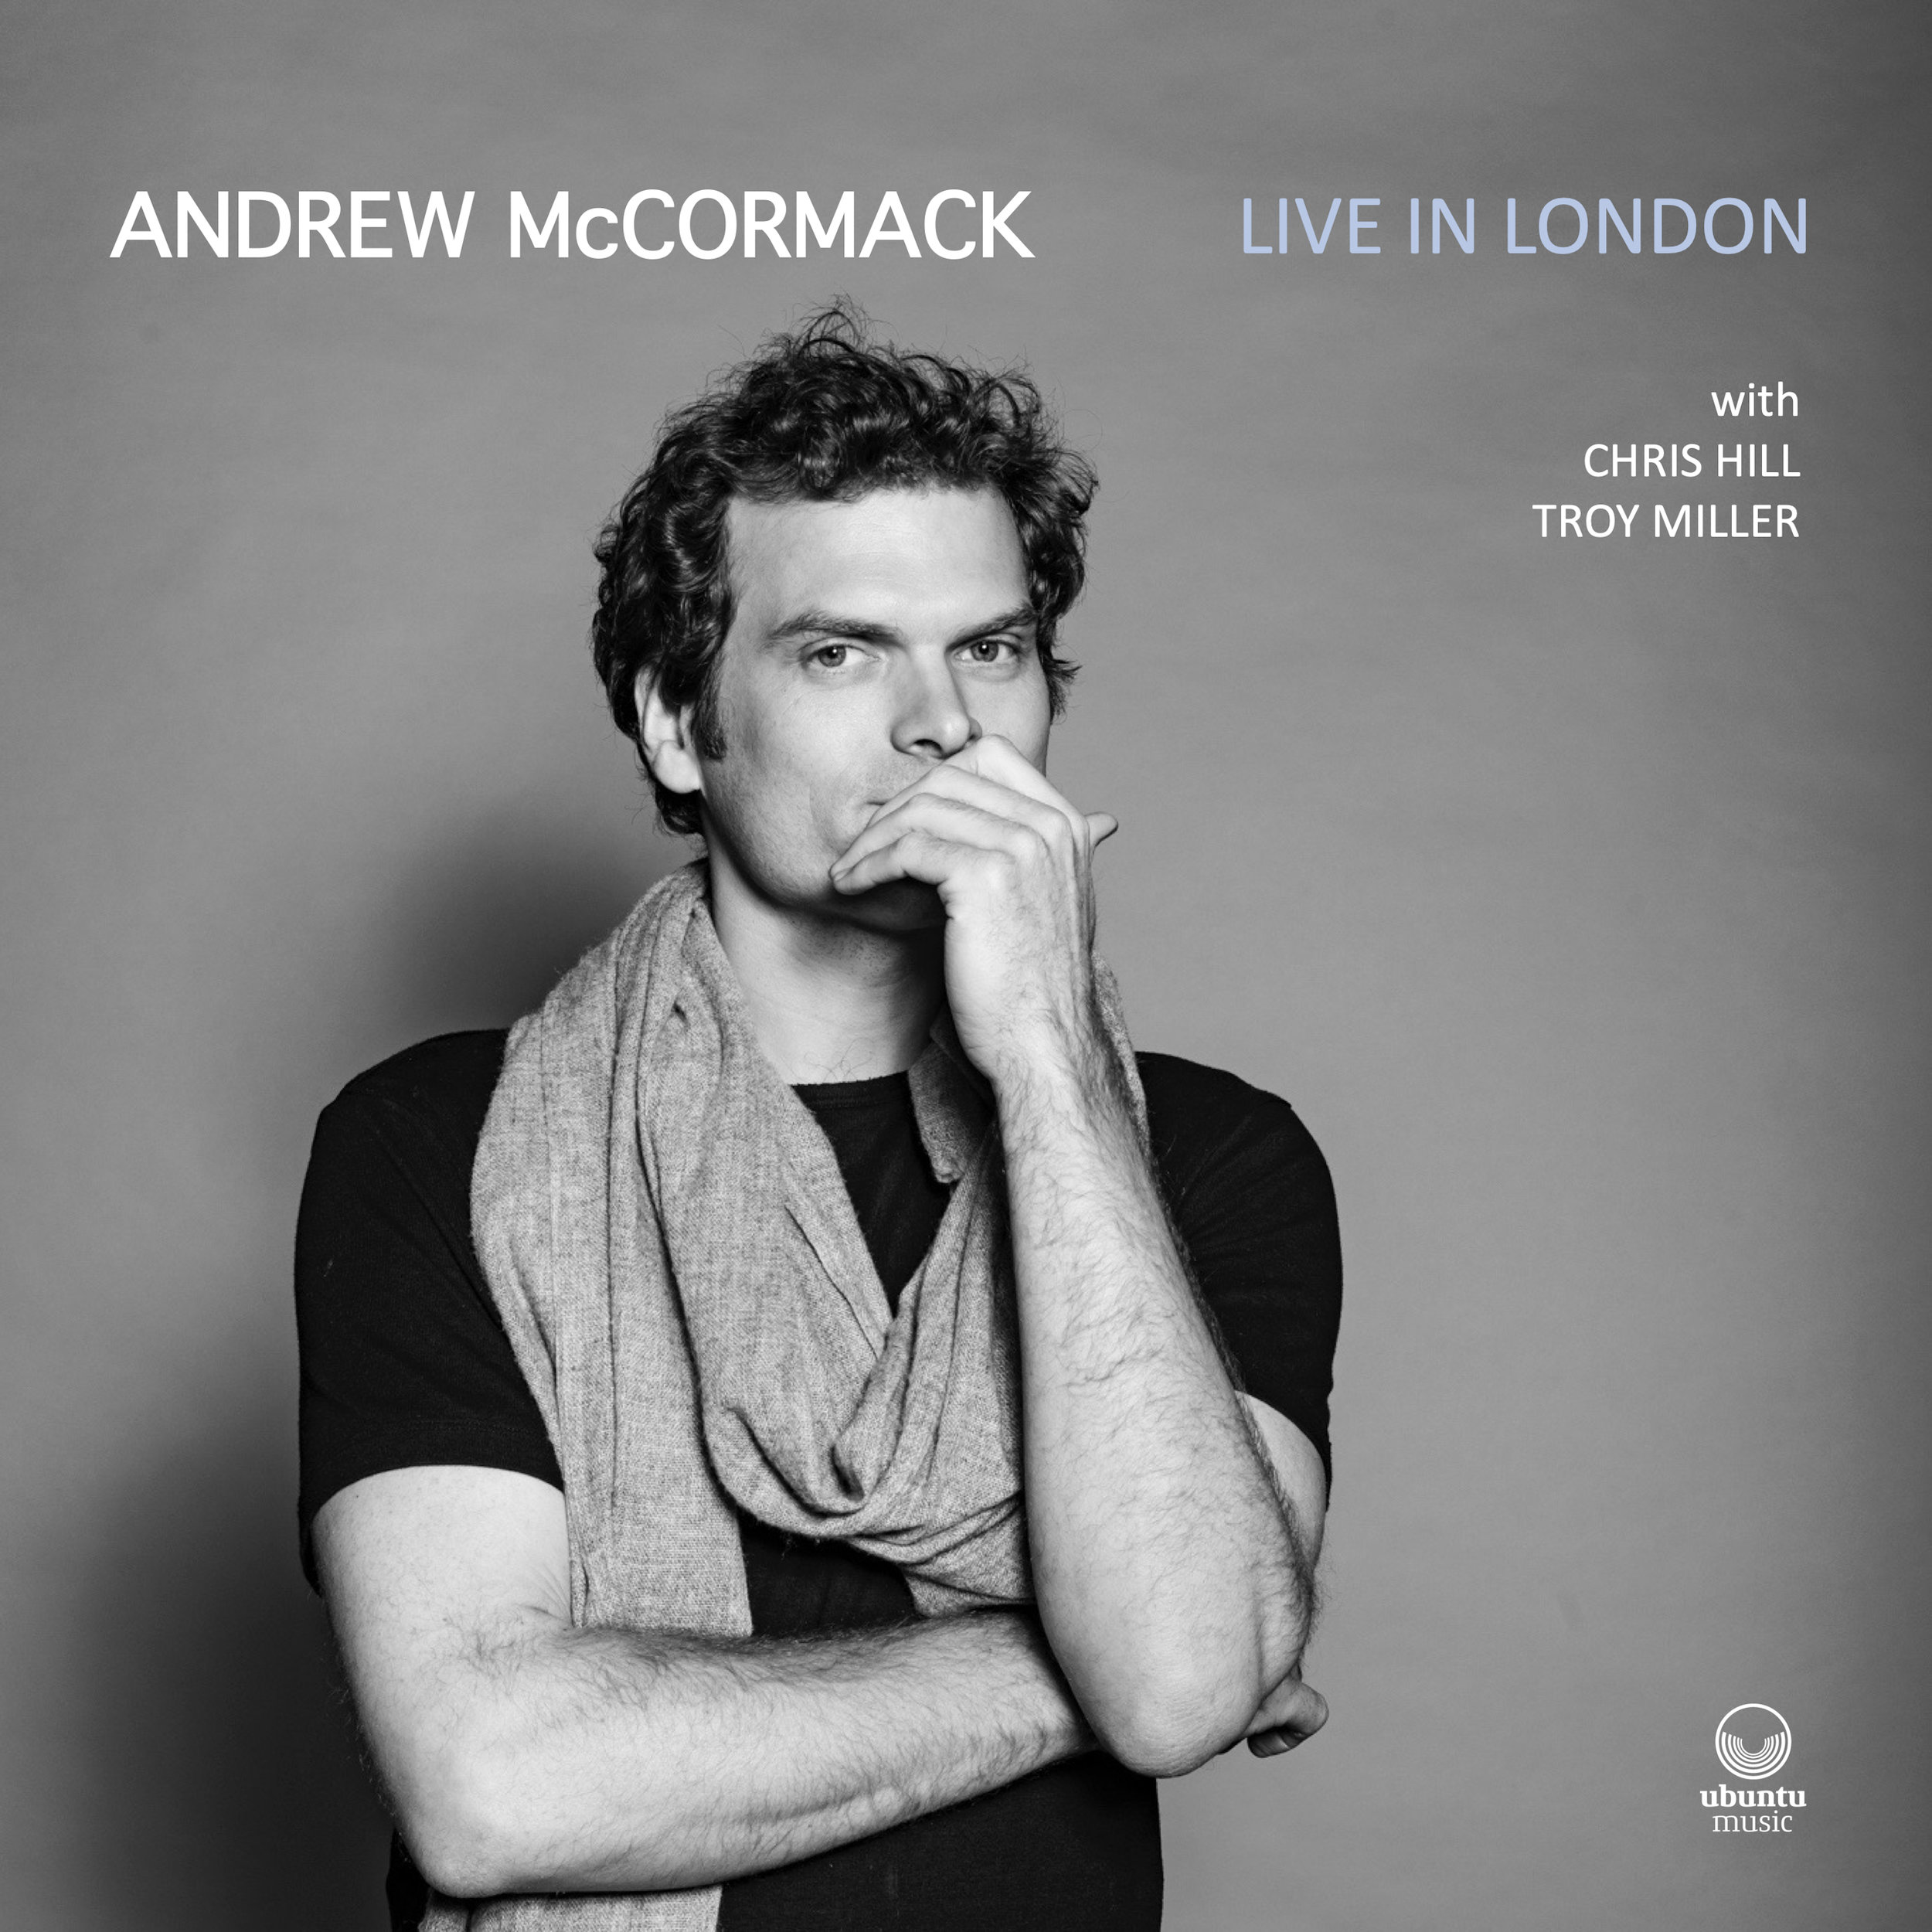 UBU0040_Andrew McCormack_Live in London Cover Final_1.8.2019.jpeg